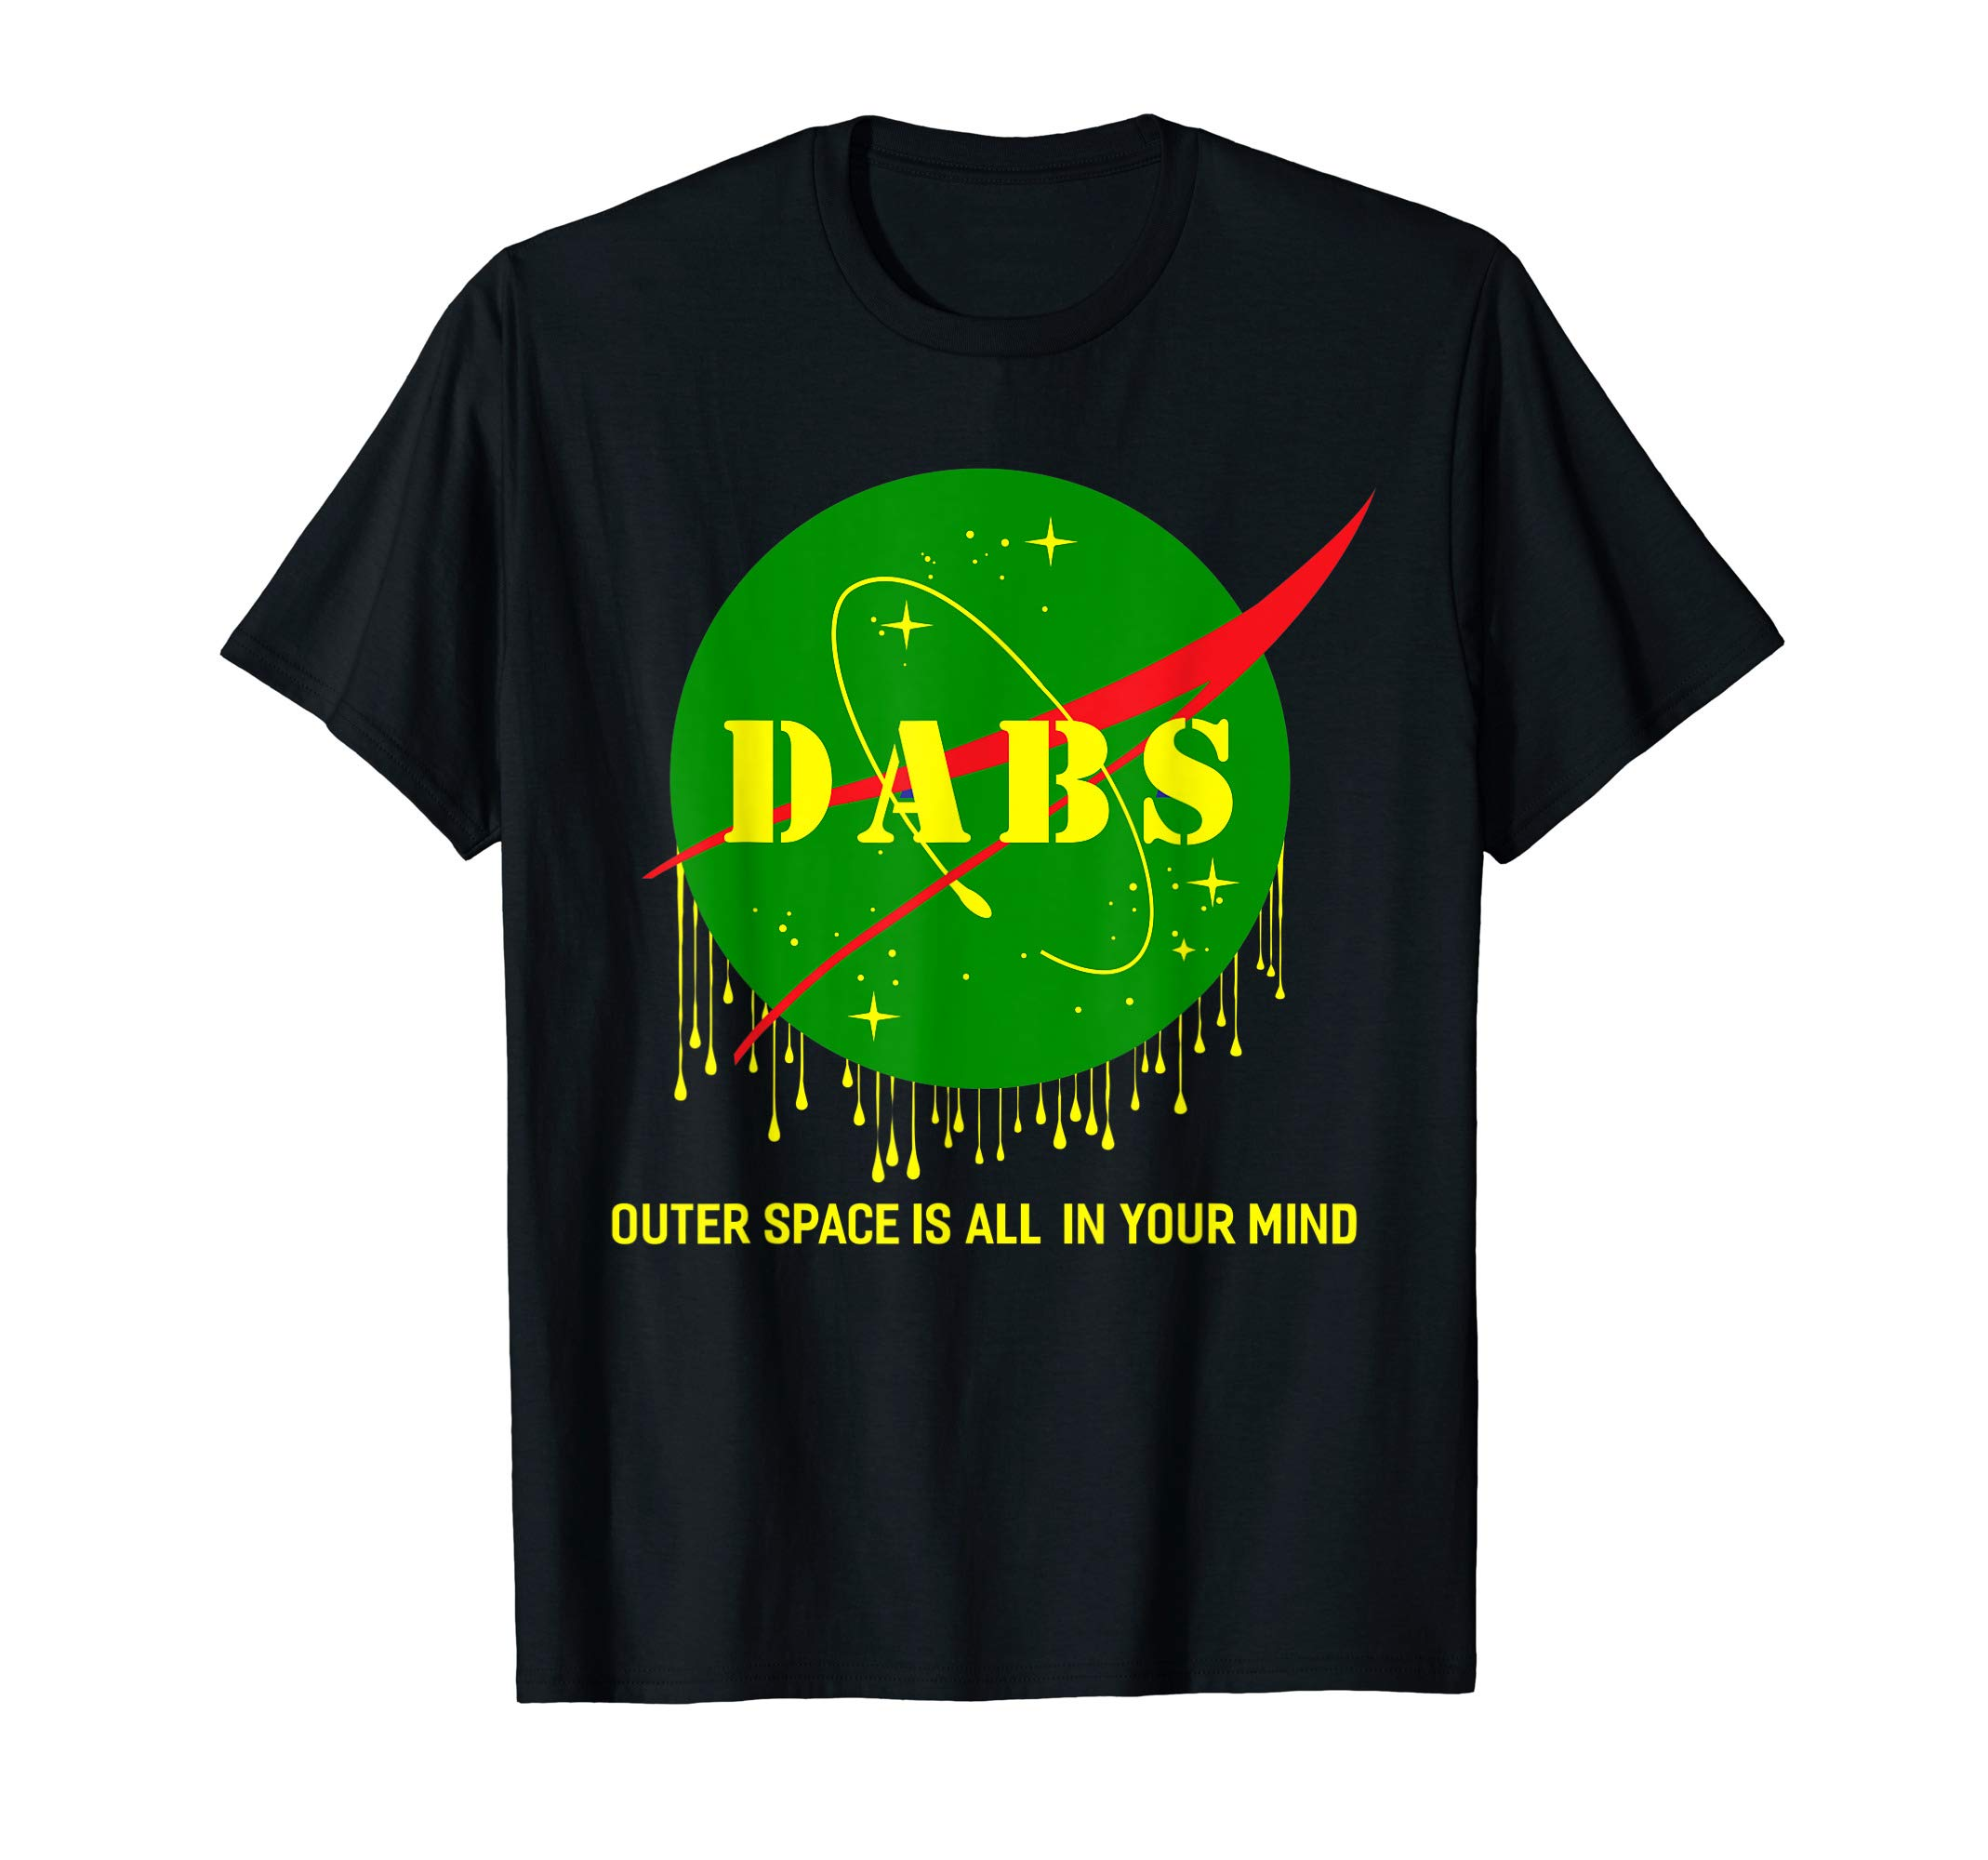 DABS | Marijuana Cannabis 420 Weed/Pot T-Shirt